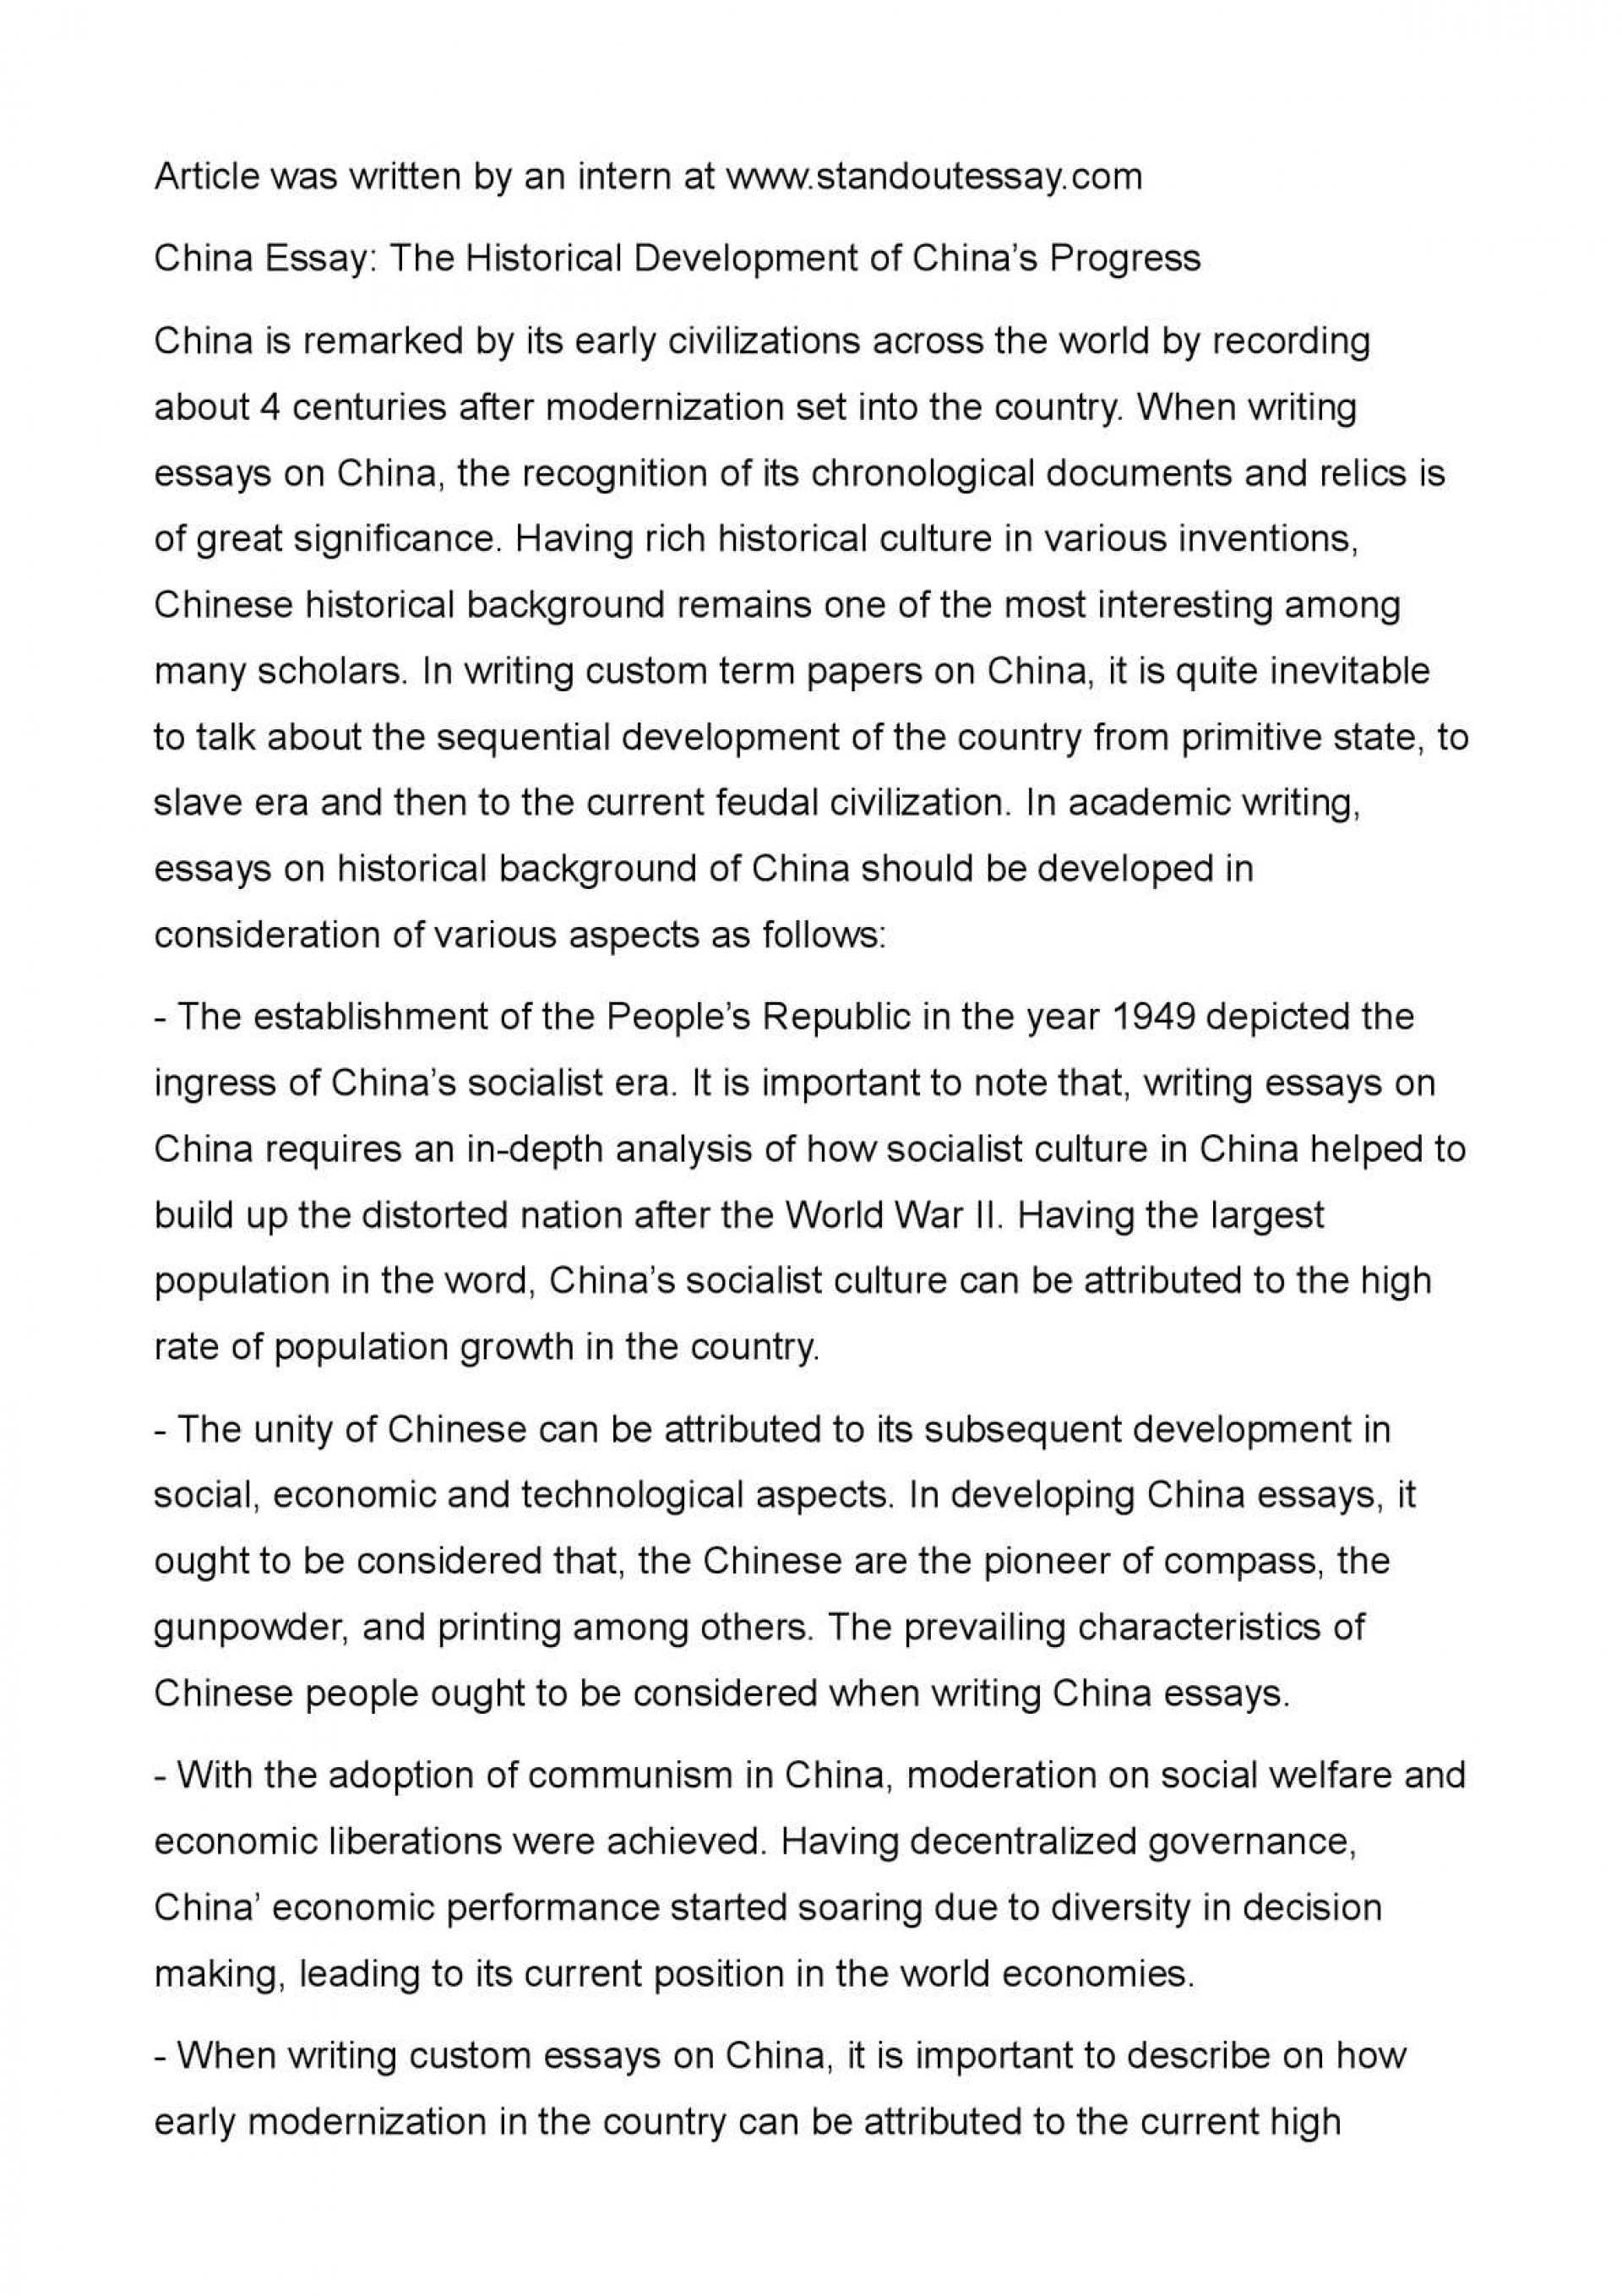 006 Essay Example Chinese Amazing Language Writing Letter Format Topics 1920